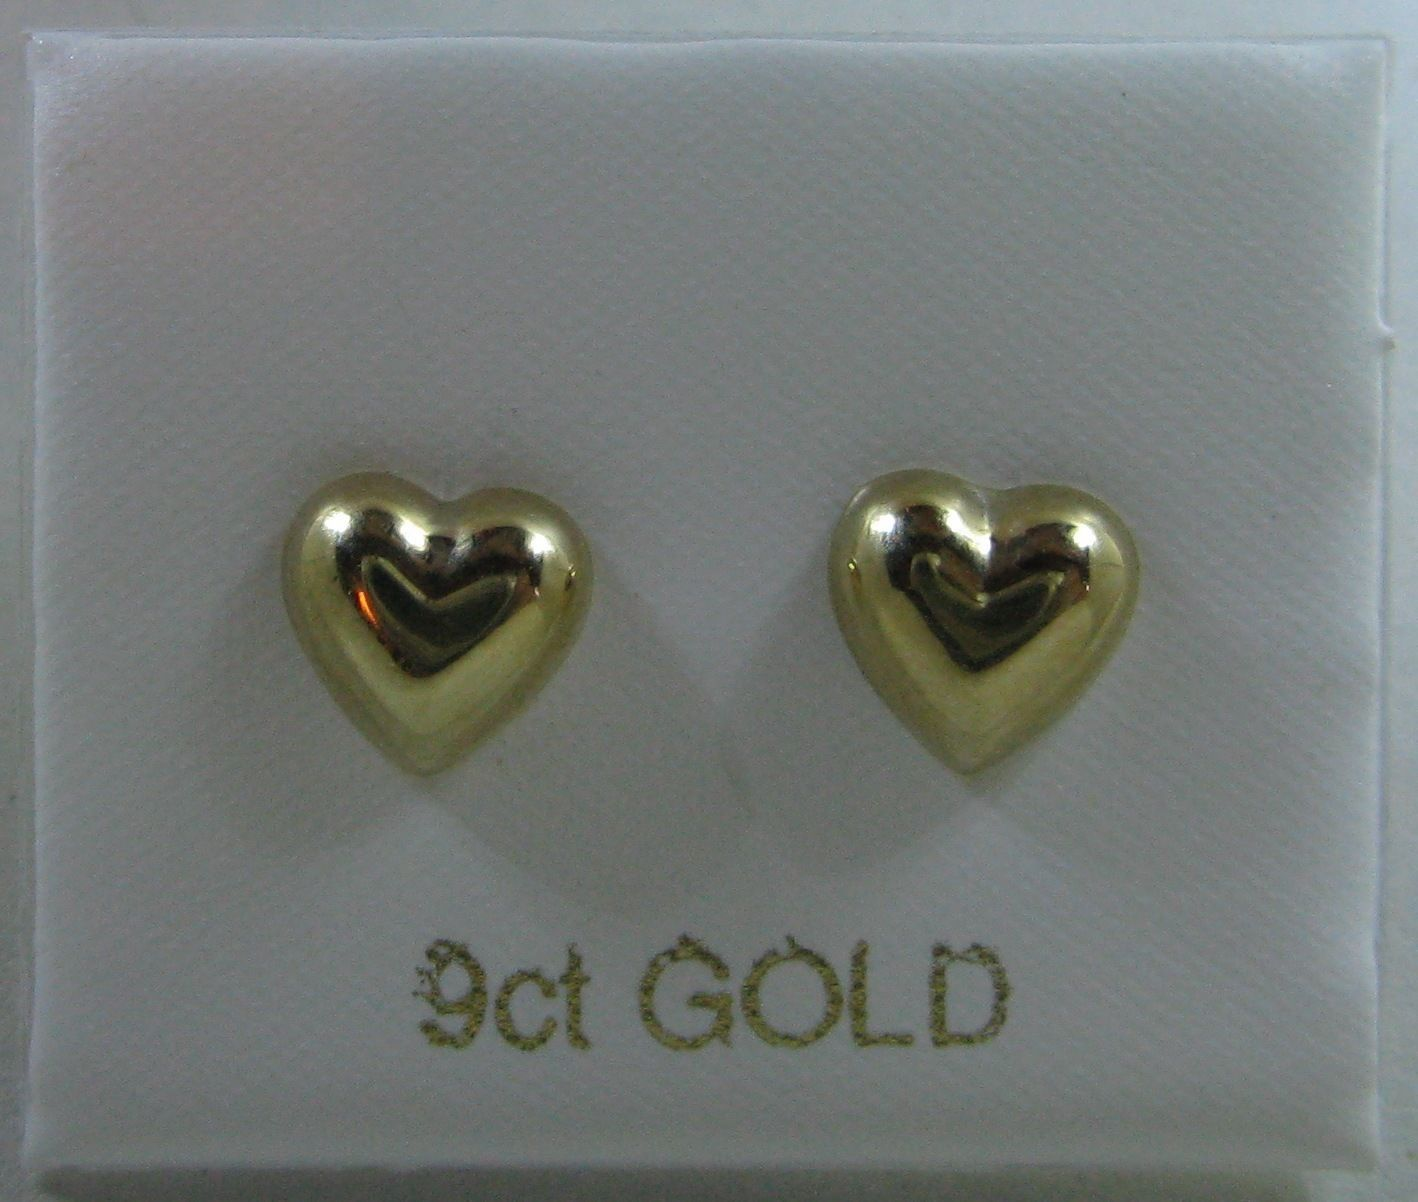 cotter gold shaped com dhgate plated earrings product heart from stud